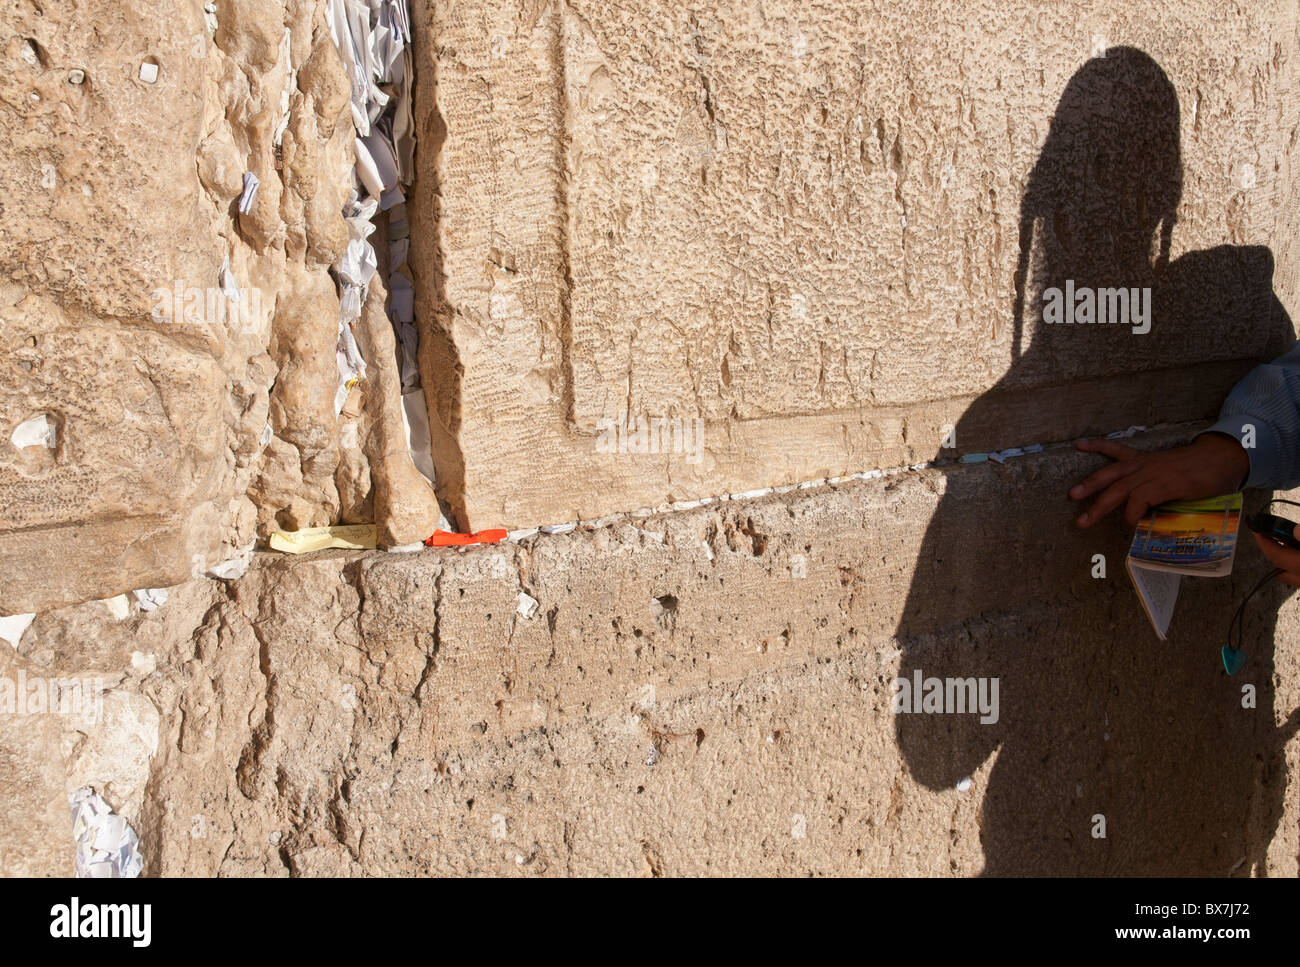 shadow of an orthodox jew praying at western wall. Jerusalem. Israel - Stock Image